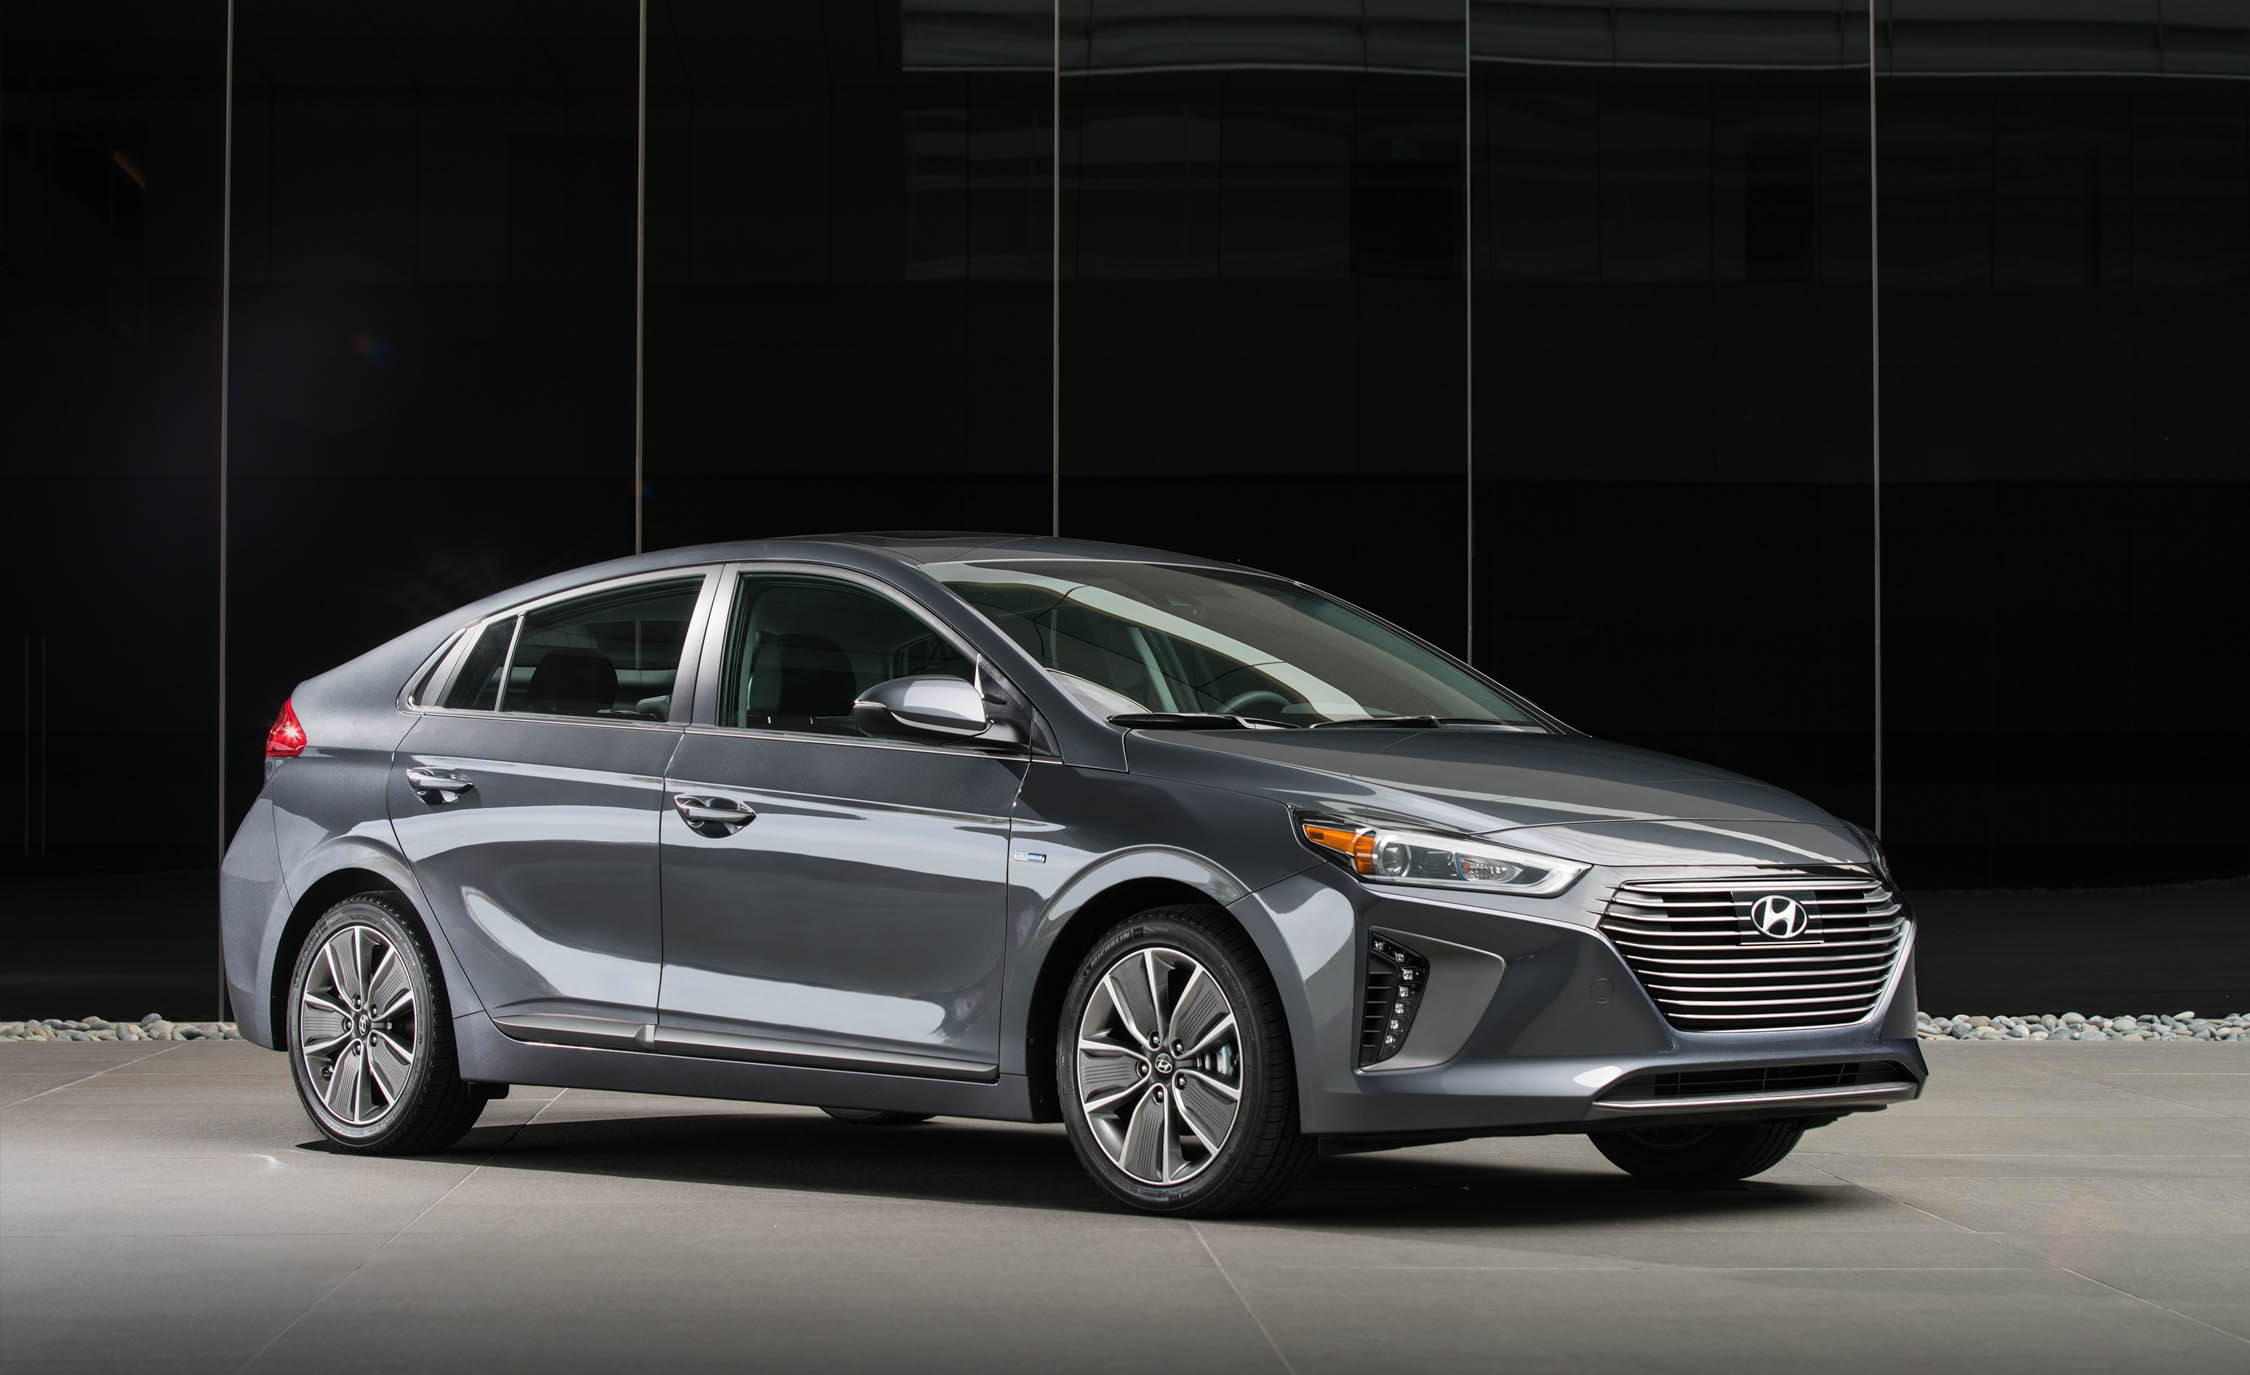 2017 Hyundai Ioniq Hybrid Exterior Front And Side (Photo 39 of 67)